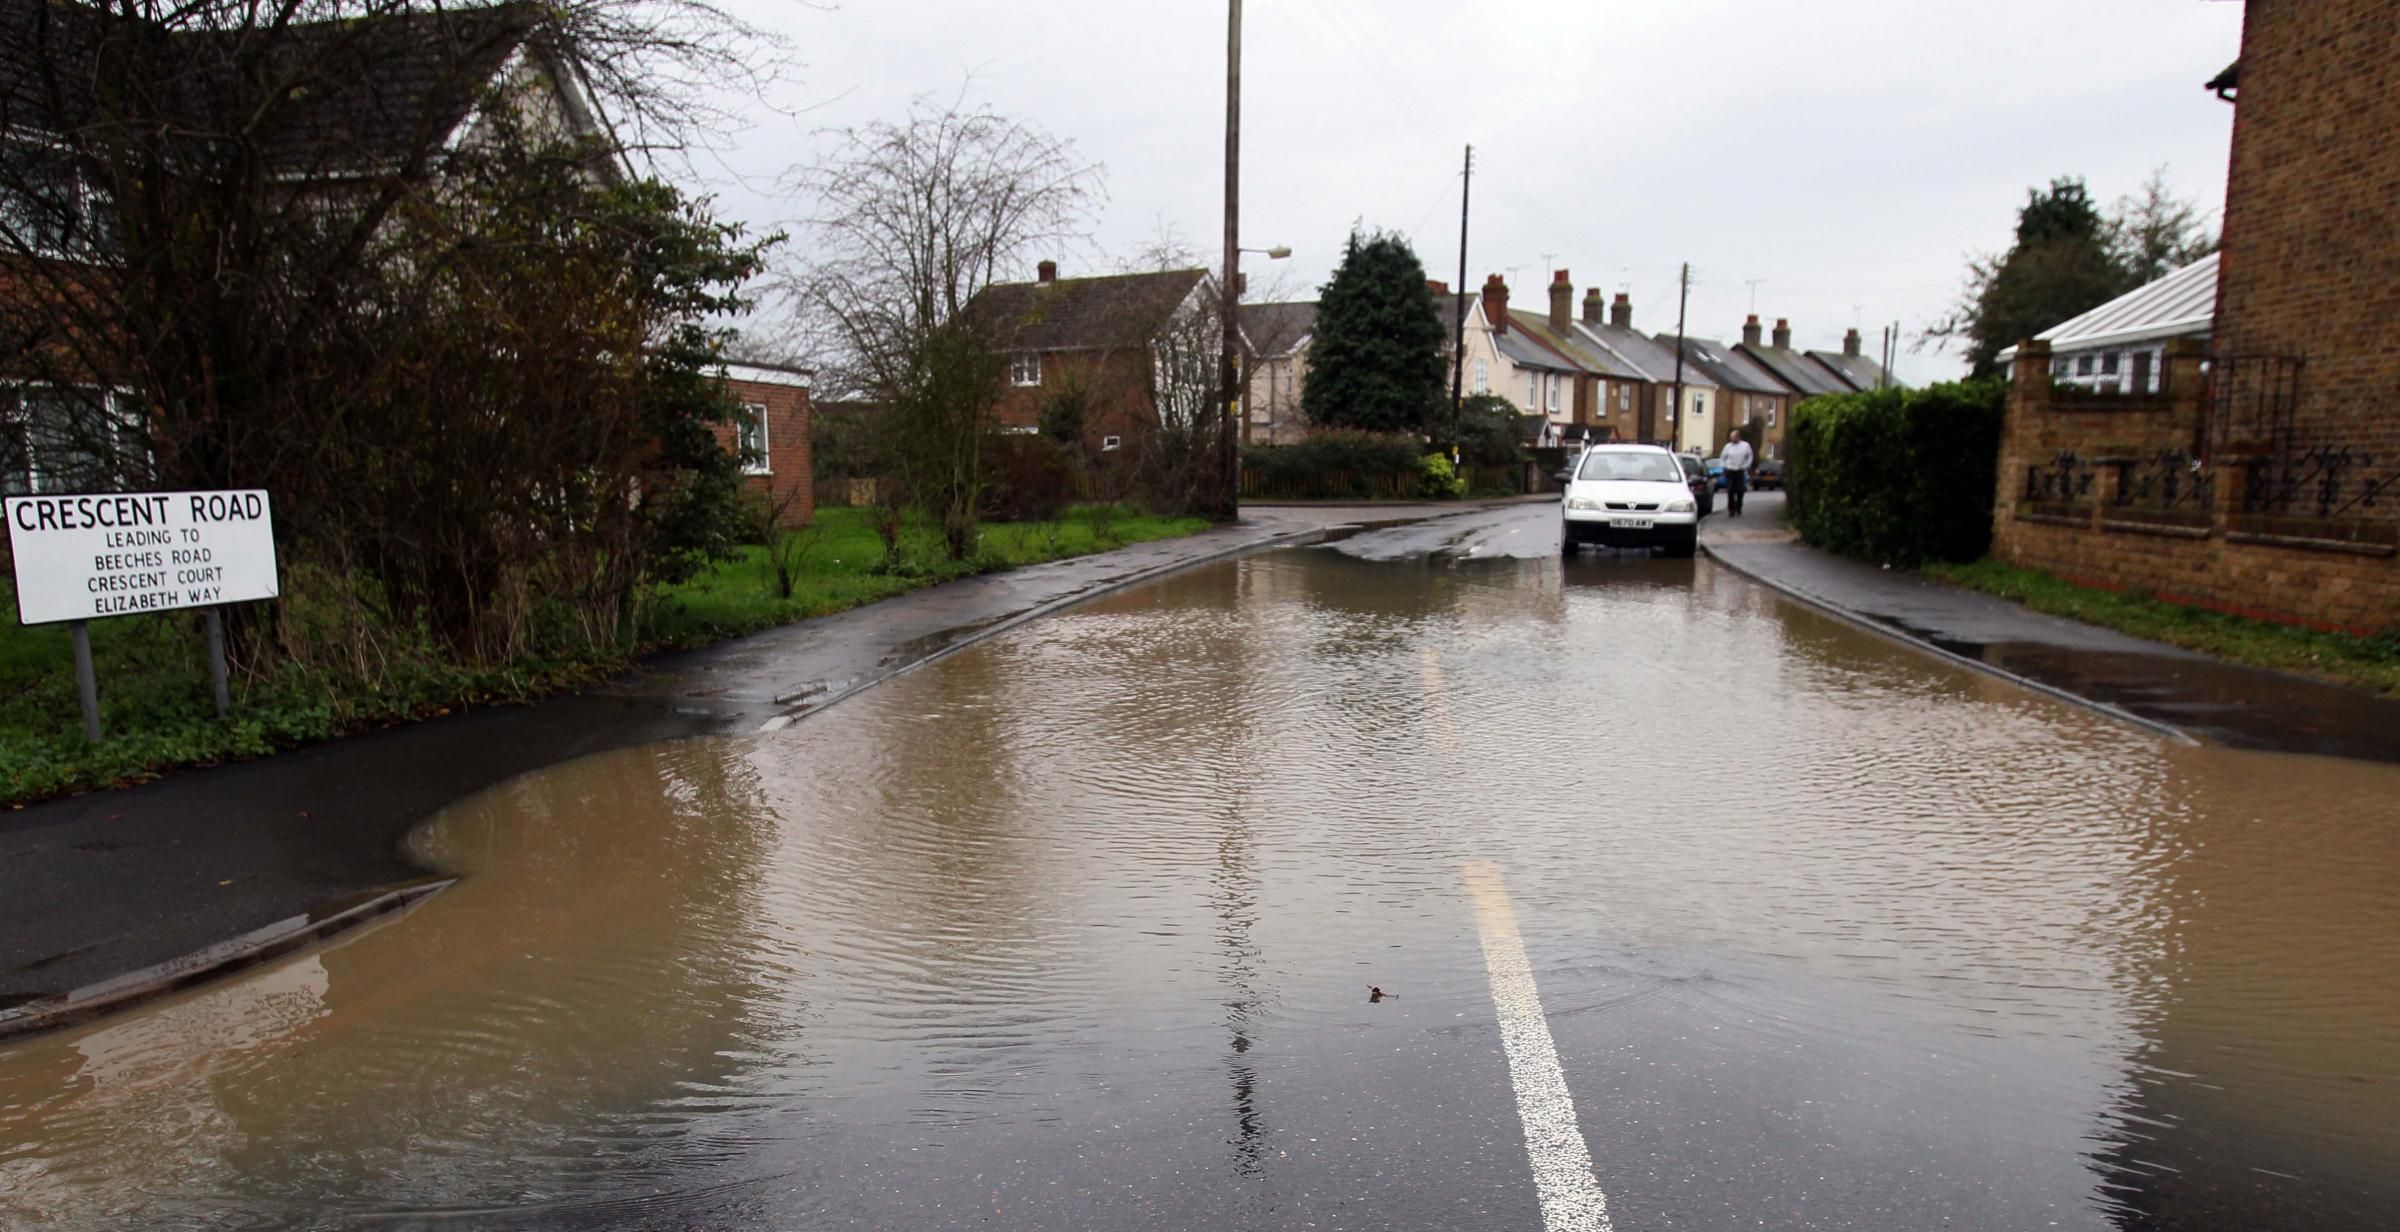 Flooding in Holloway Road, Heybridge, on Christmas eve. There are plans to build hundreds of homes on fields behind the street.